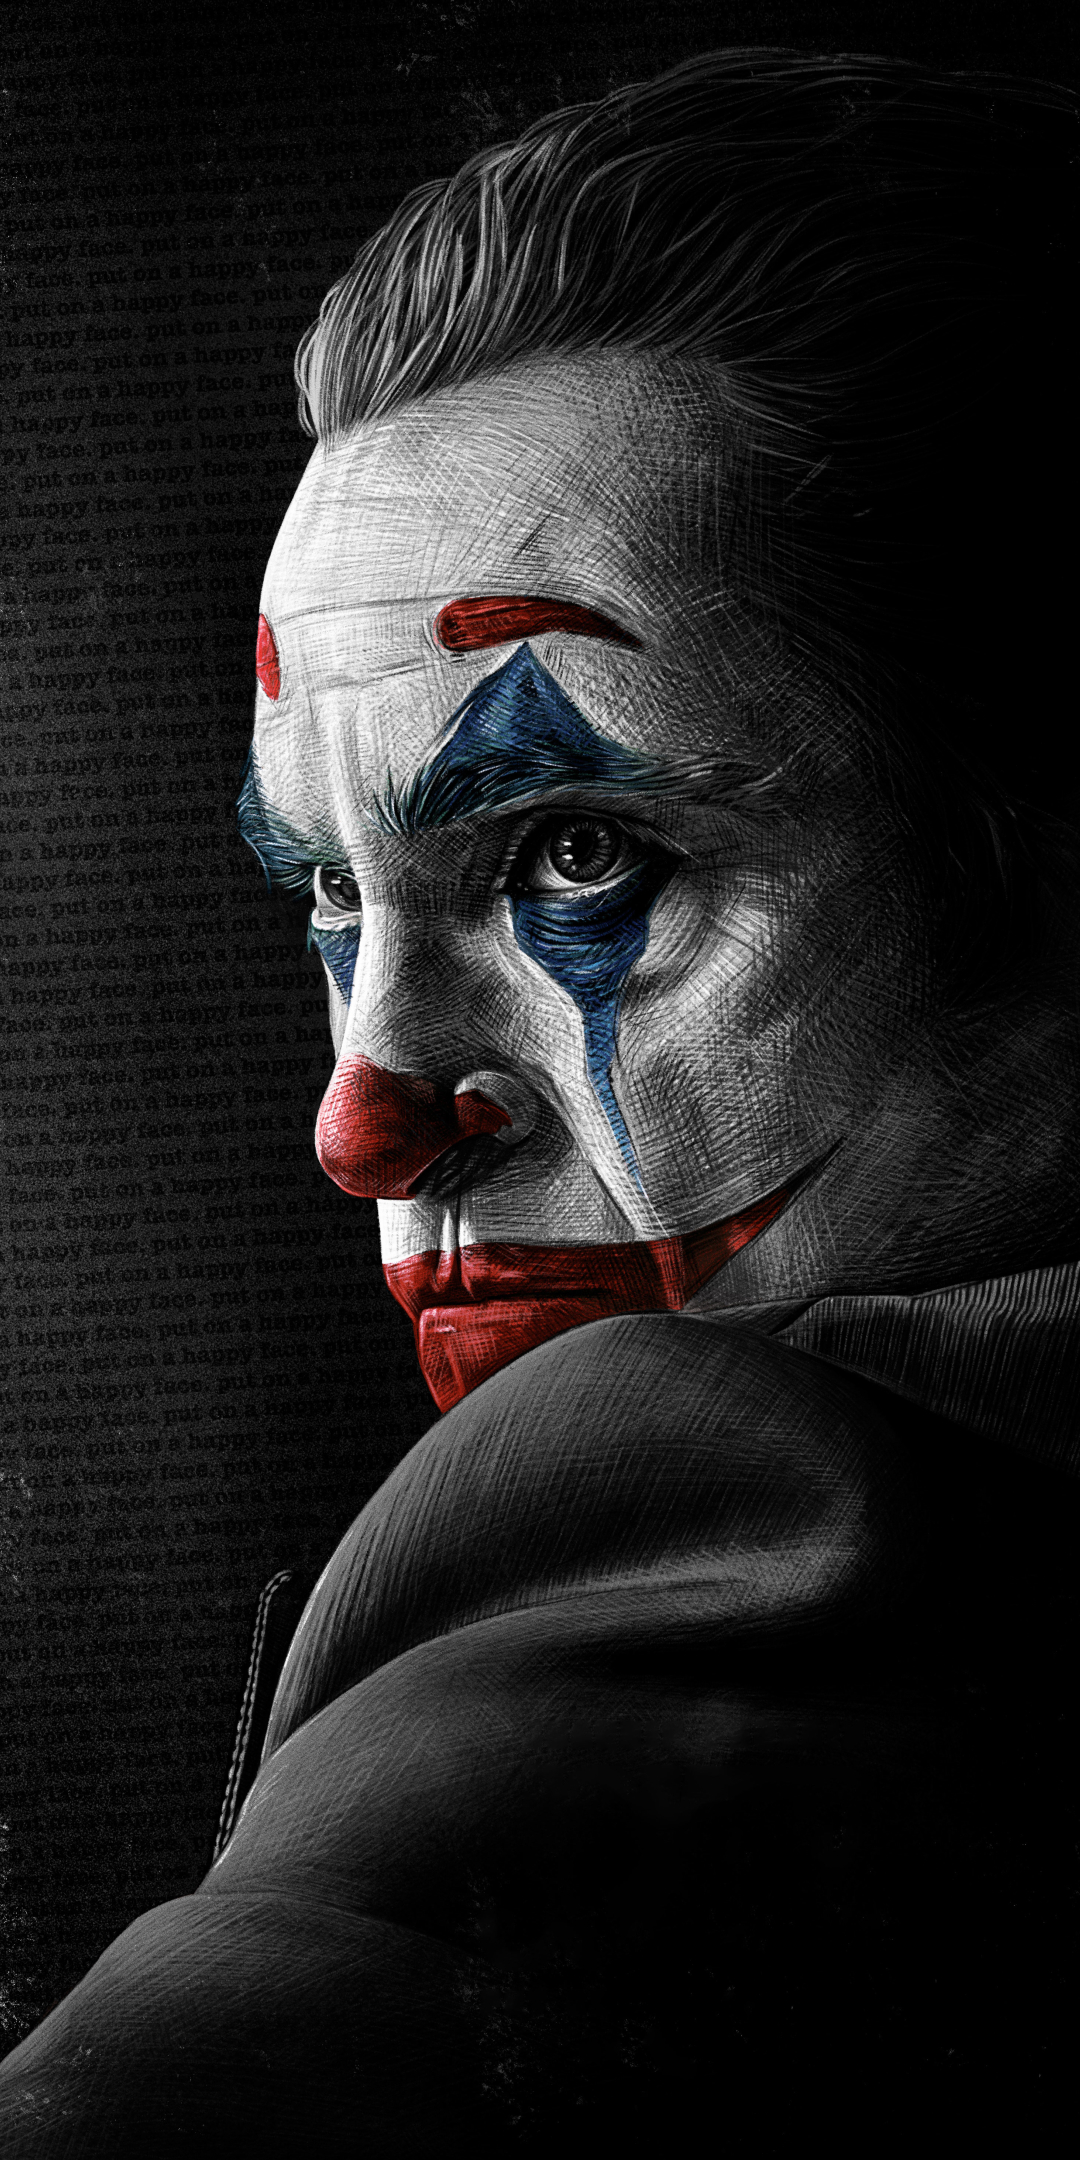 1080x2160 4k Joaquin Phoenix As Joker One Plus 5t Honor 7x Honor View 10 Lg Q6 Wallpaper Hd Artist 4k Wallpapers Images Photos And Background